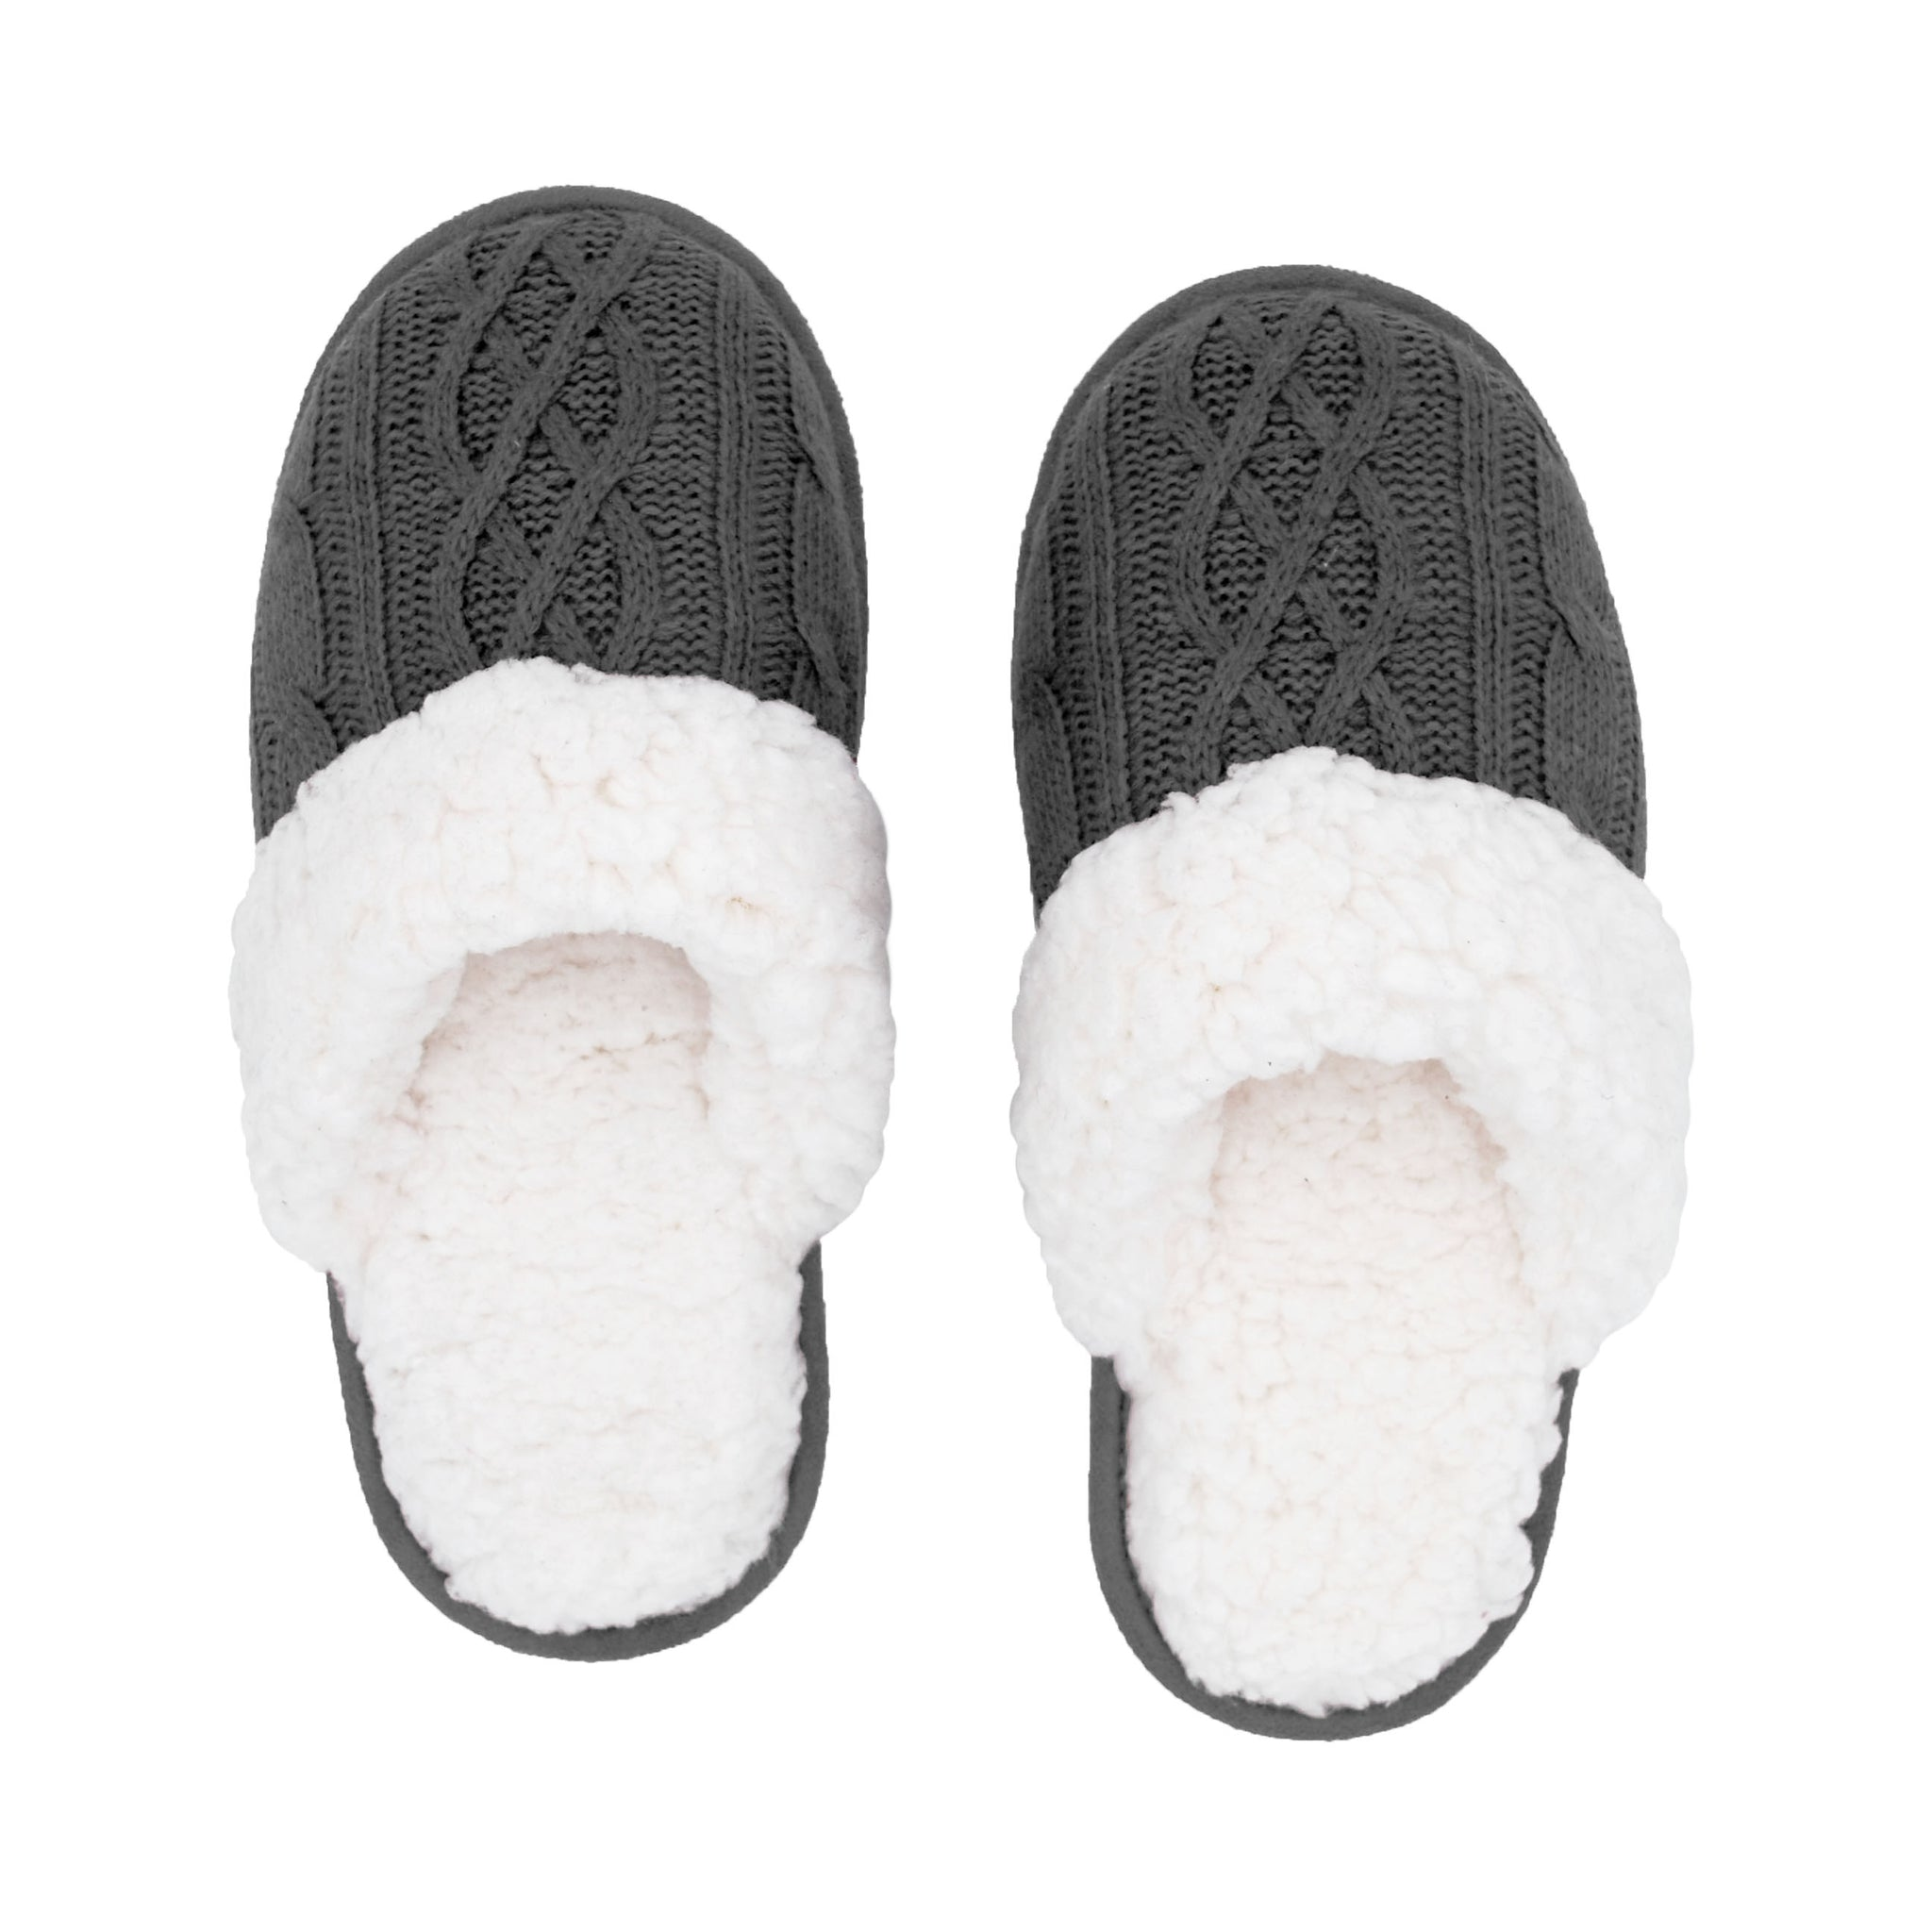 Creekside Slide Slippers | Cable Knit Grey